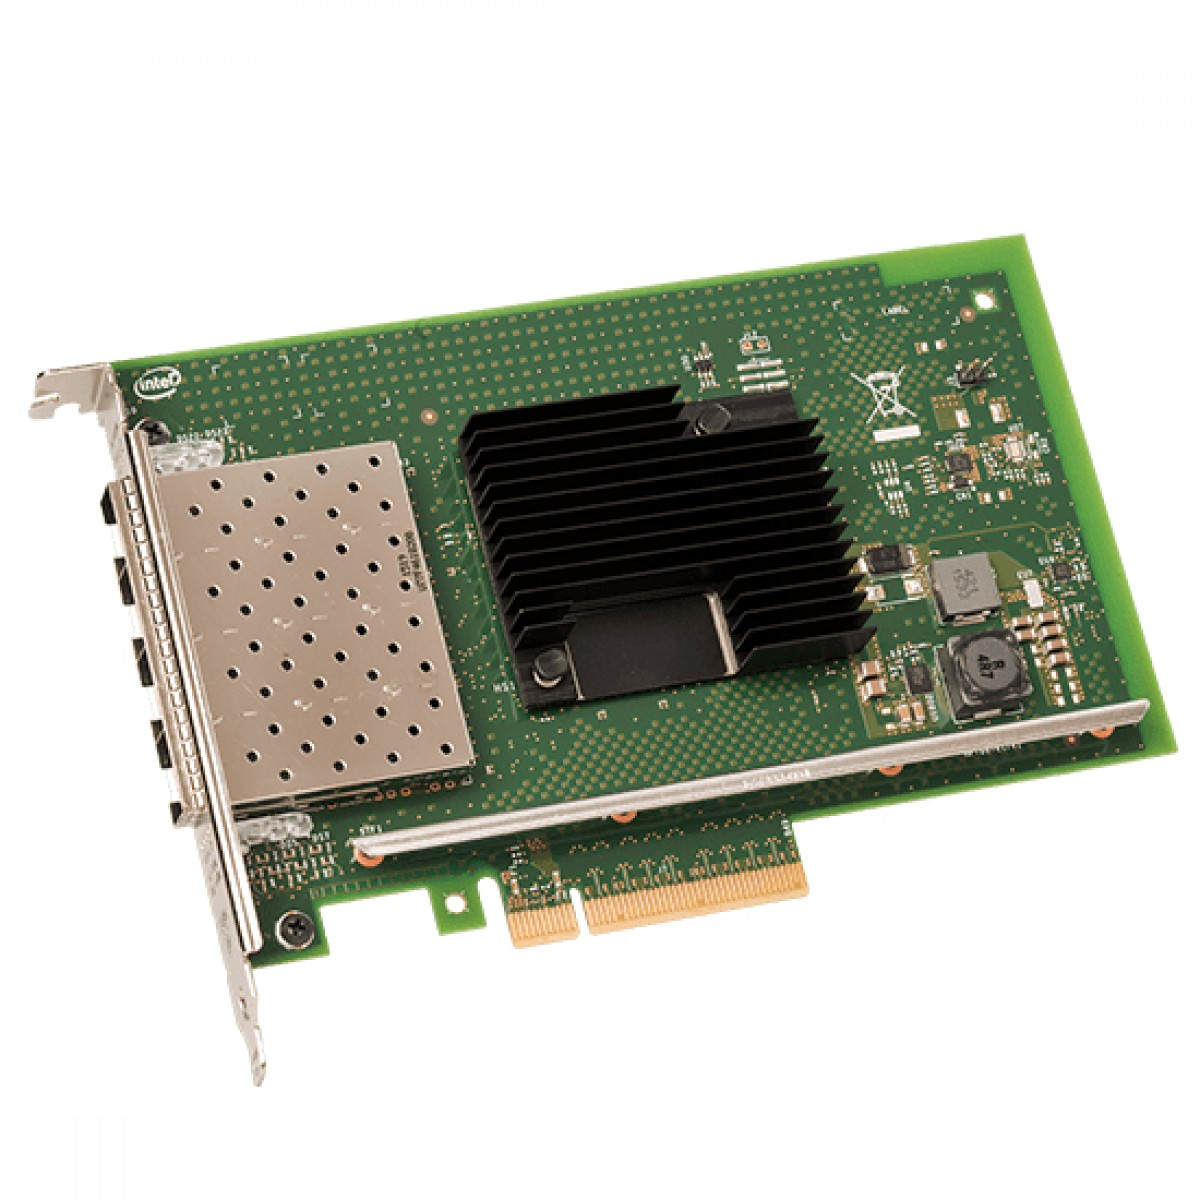 Intel Converged Network Adapter X710-4 Ethernet Drivers for Windows